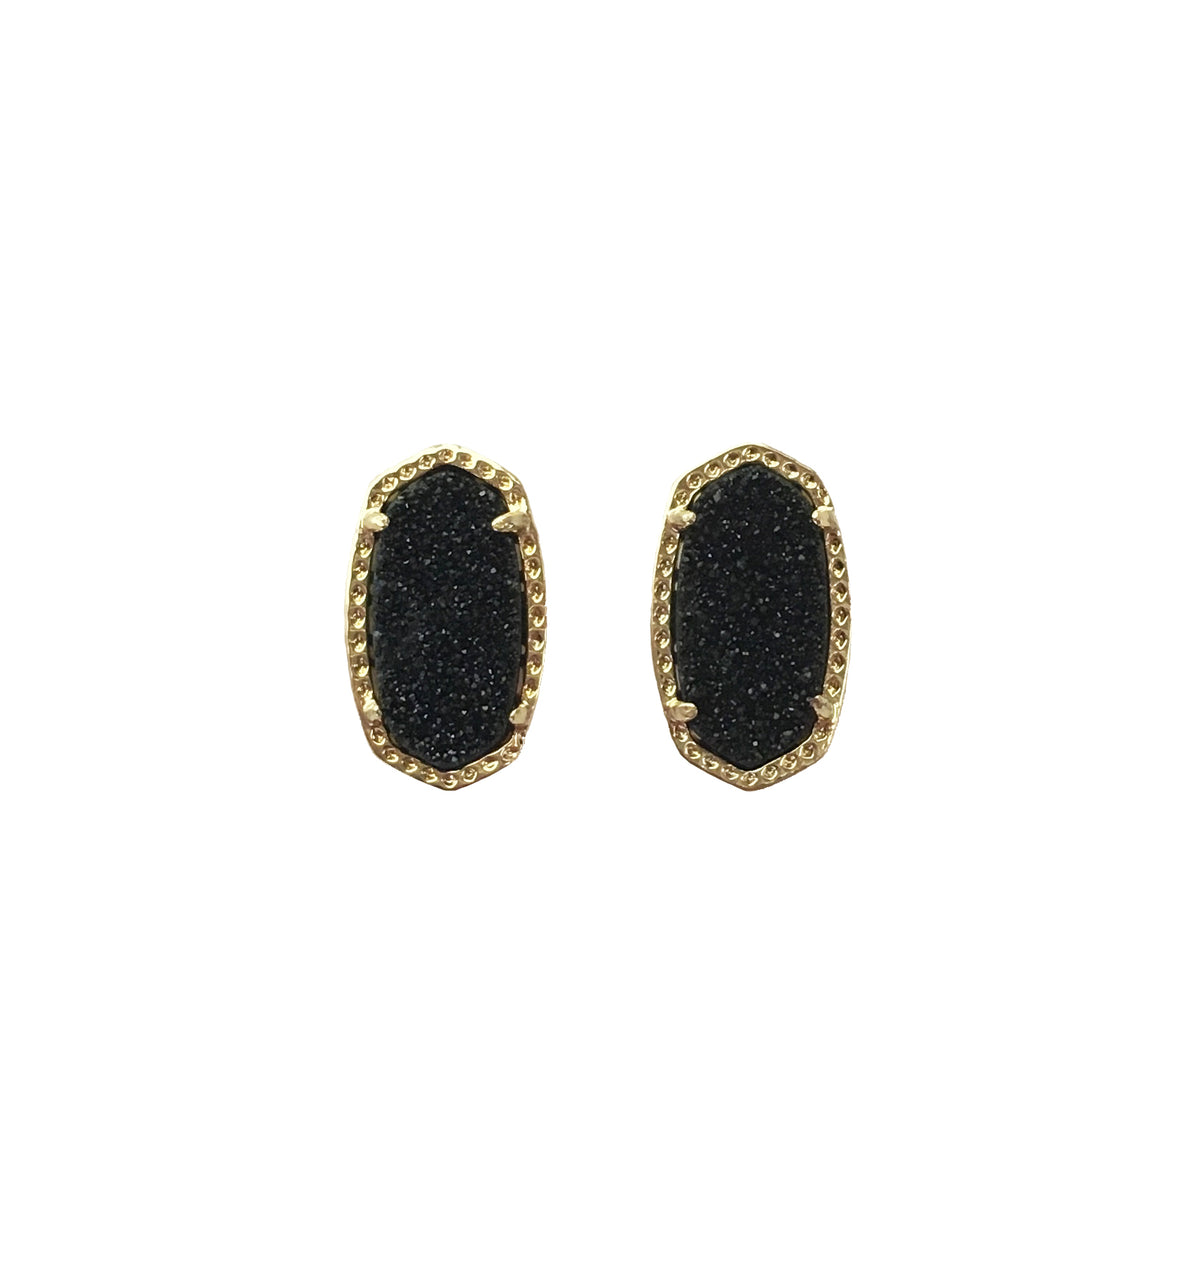 Black Druzy Hexagon Earrings